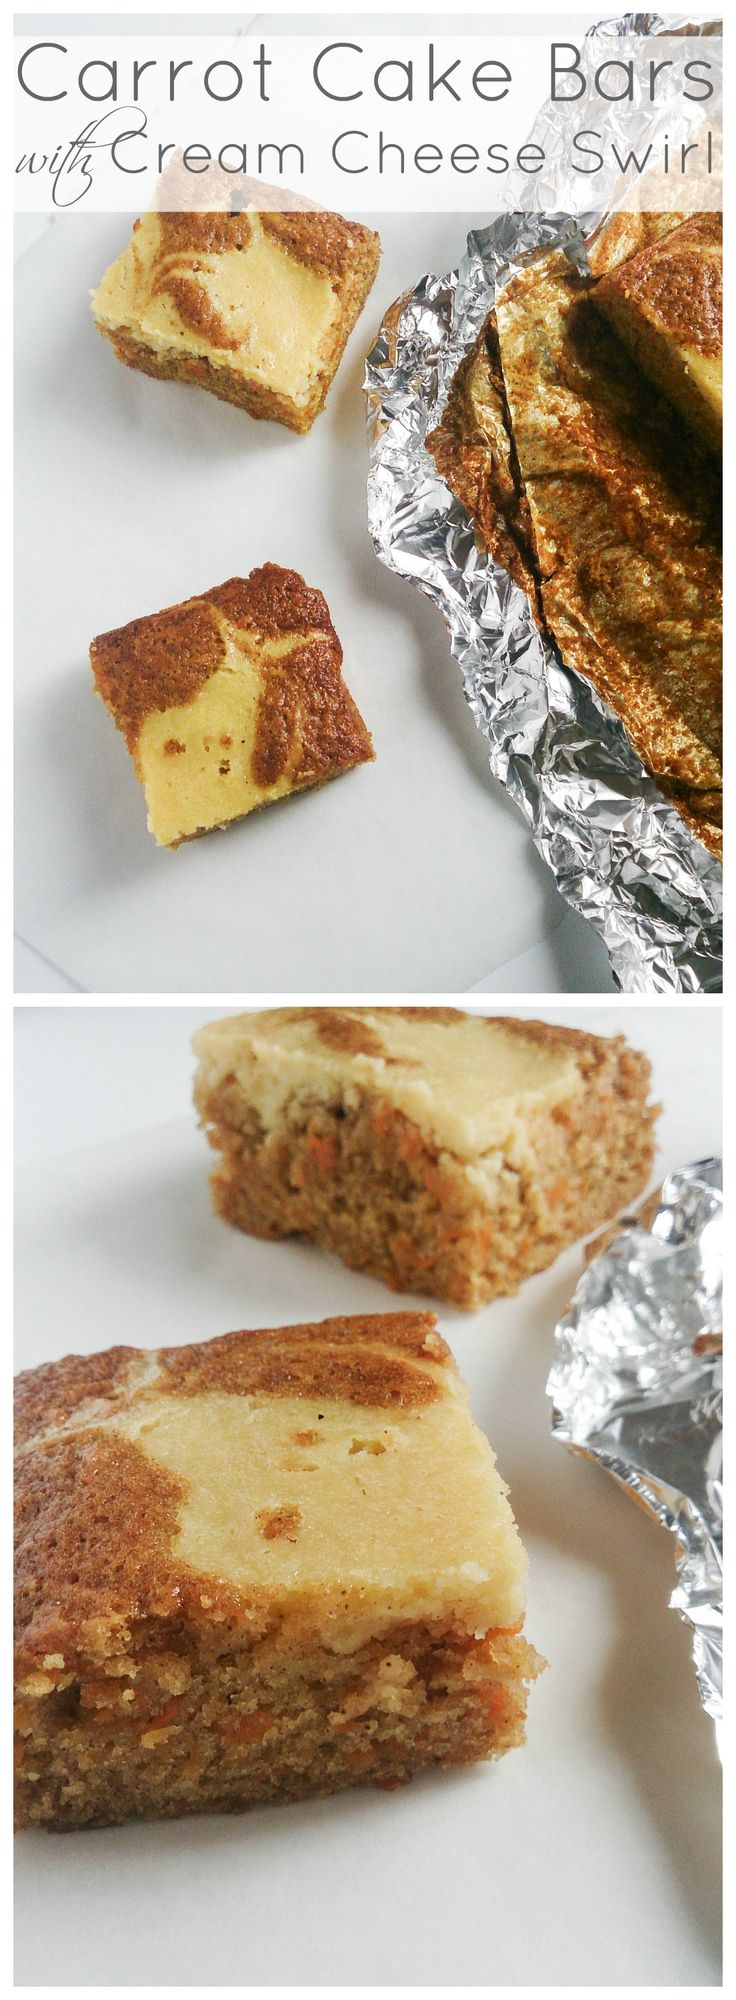 1000+ images about Brownies, Blondies, Bars, Booyah! on Pinterest ...